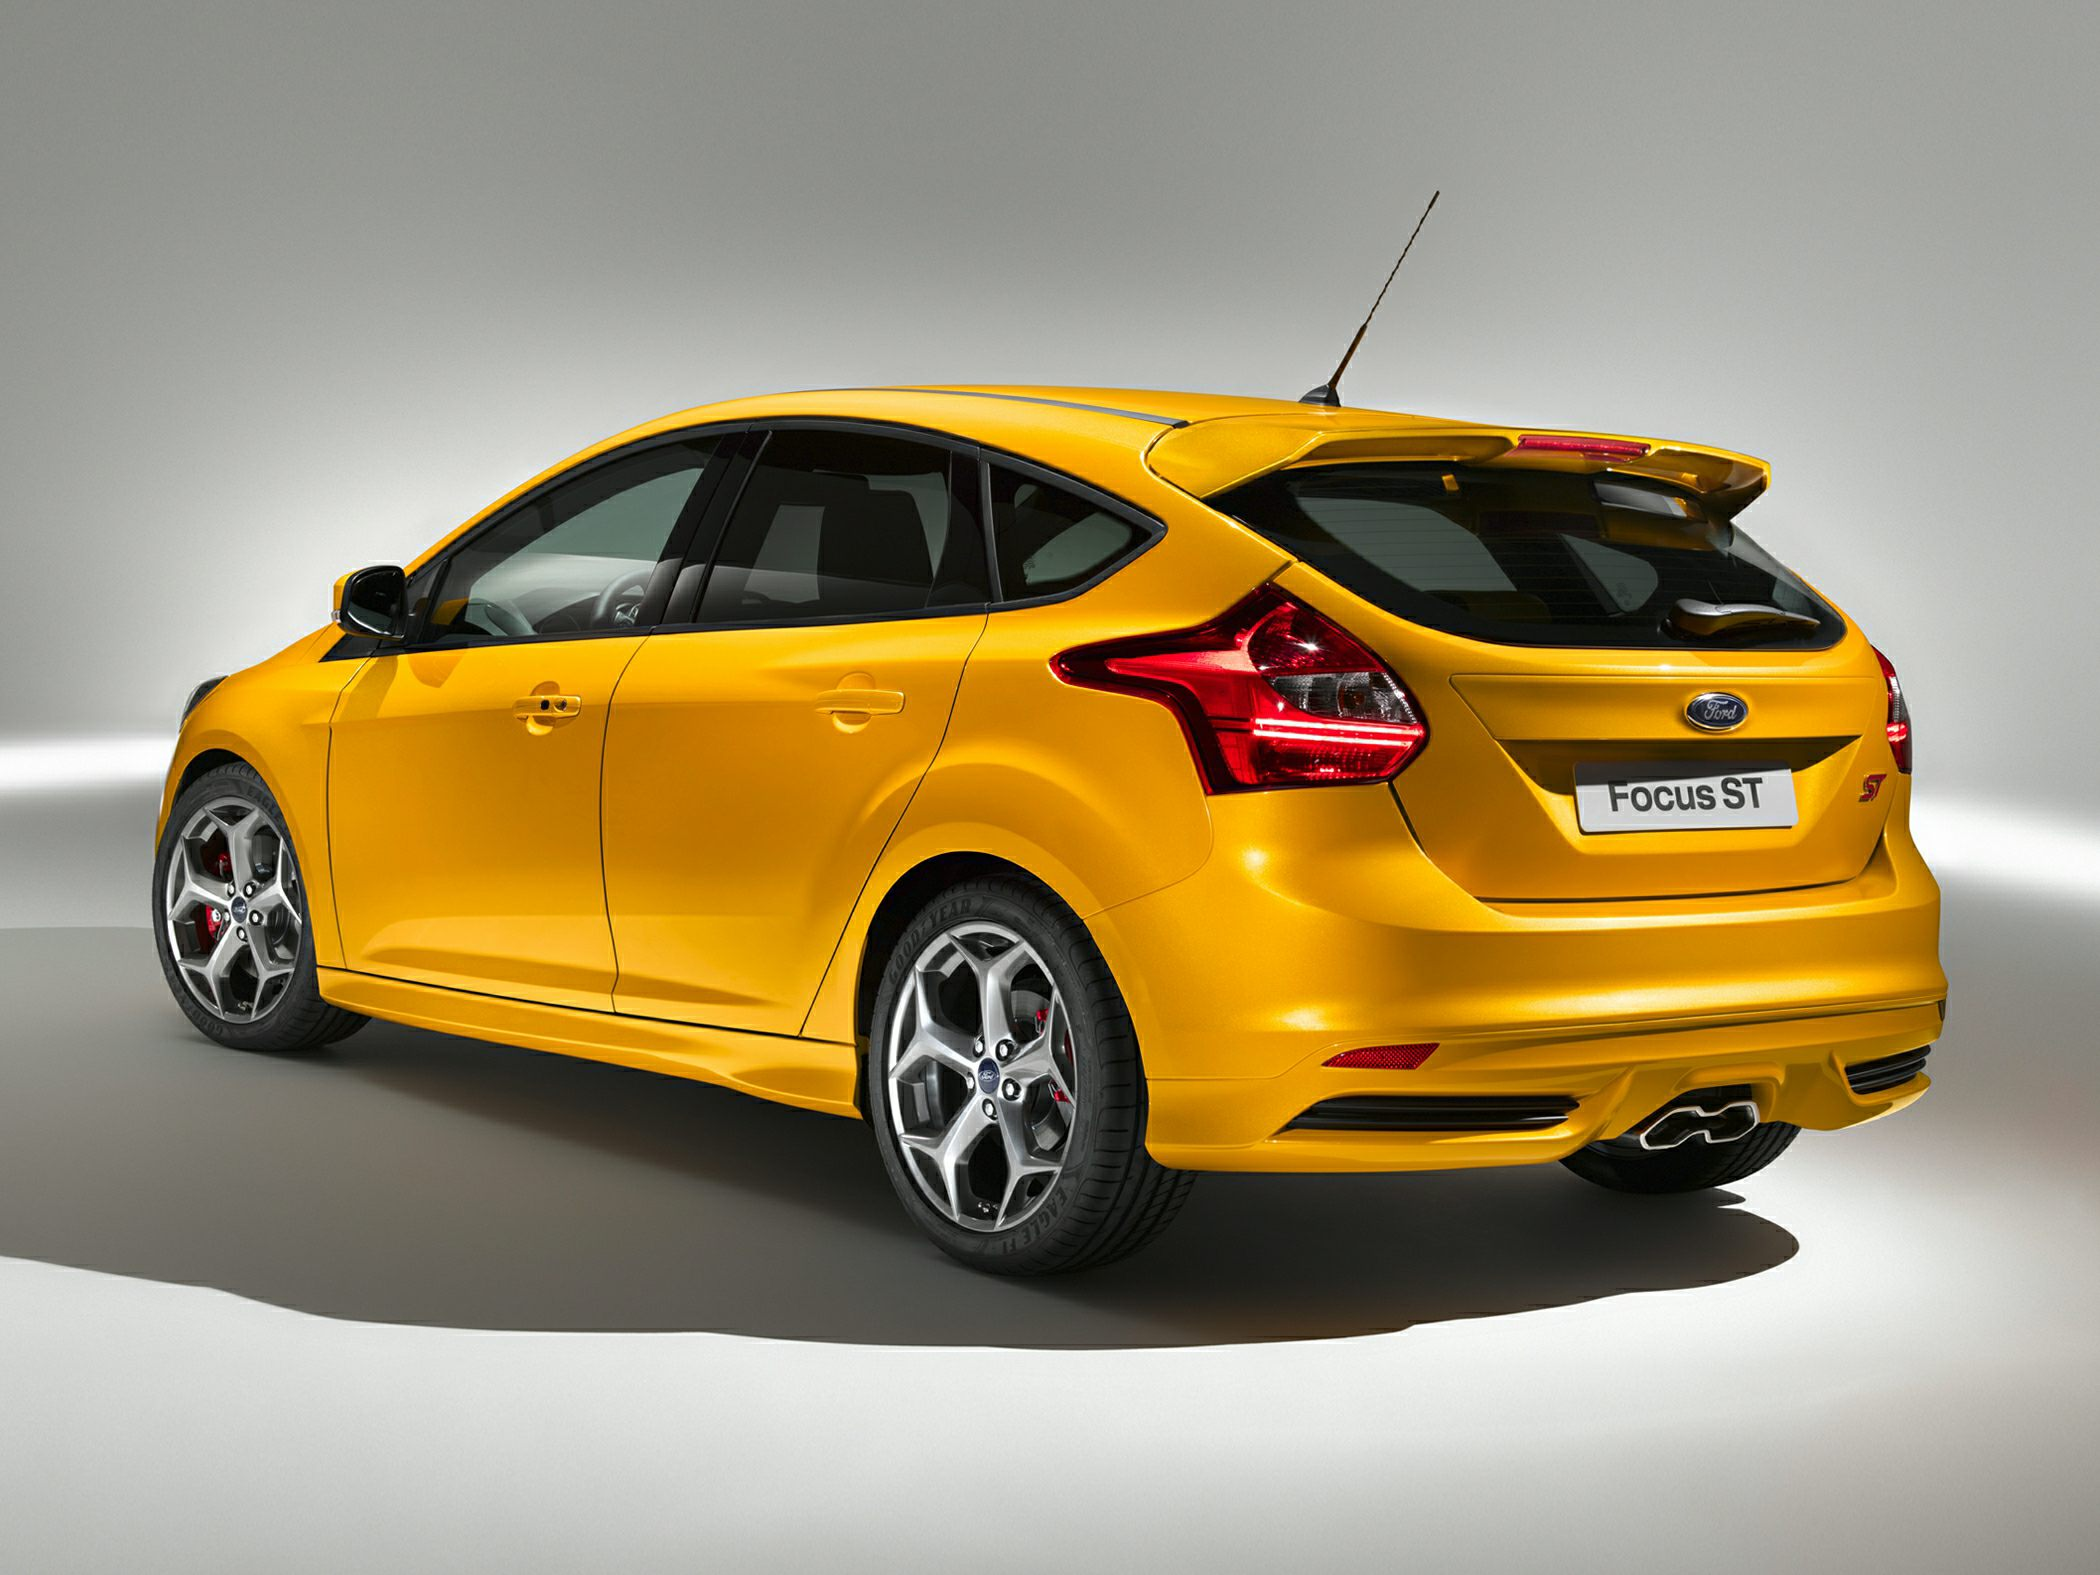 2014 Ford Focus St Information And Photos Zombiedrive Frame 19